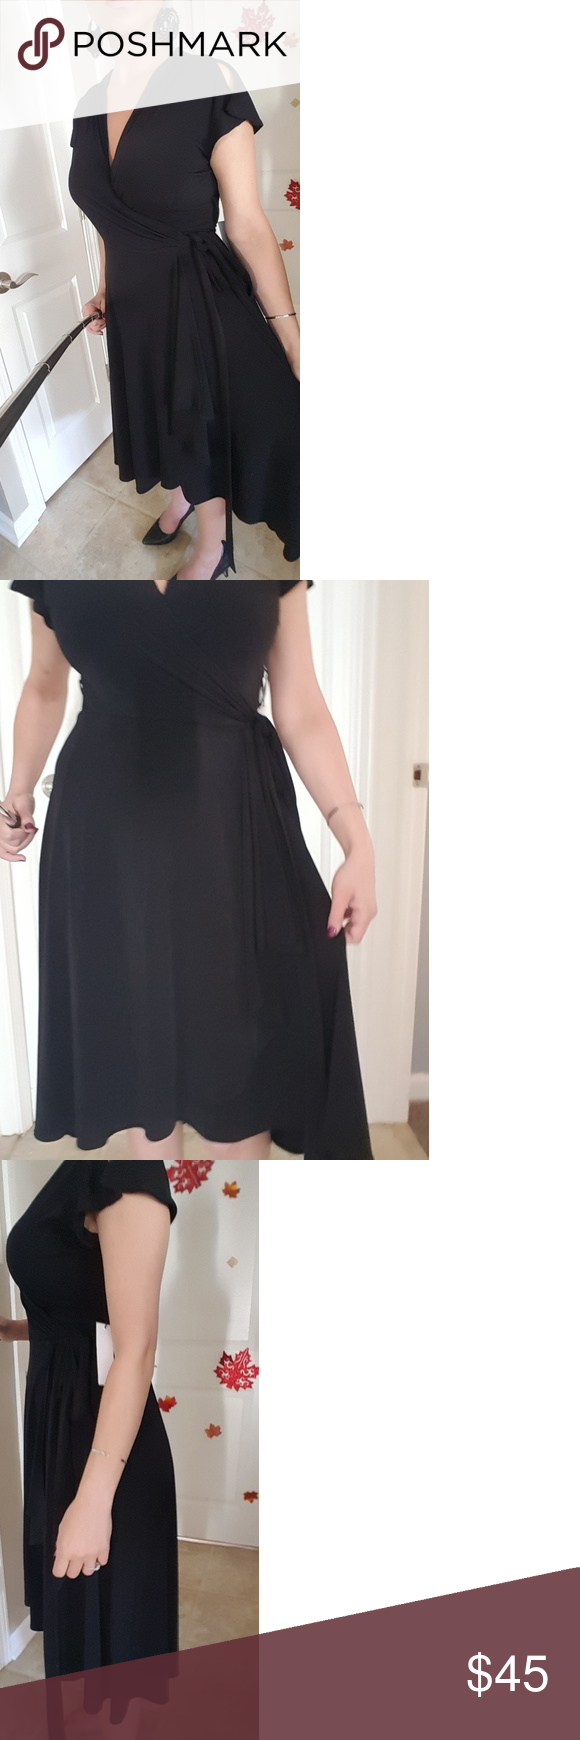 Black wrap dress wrap dresses wraps and customer support